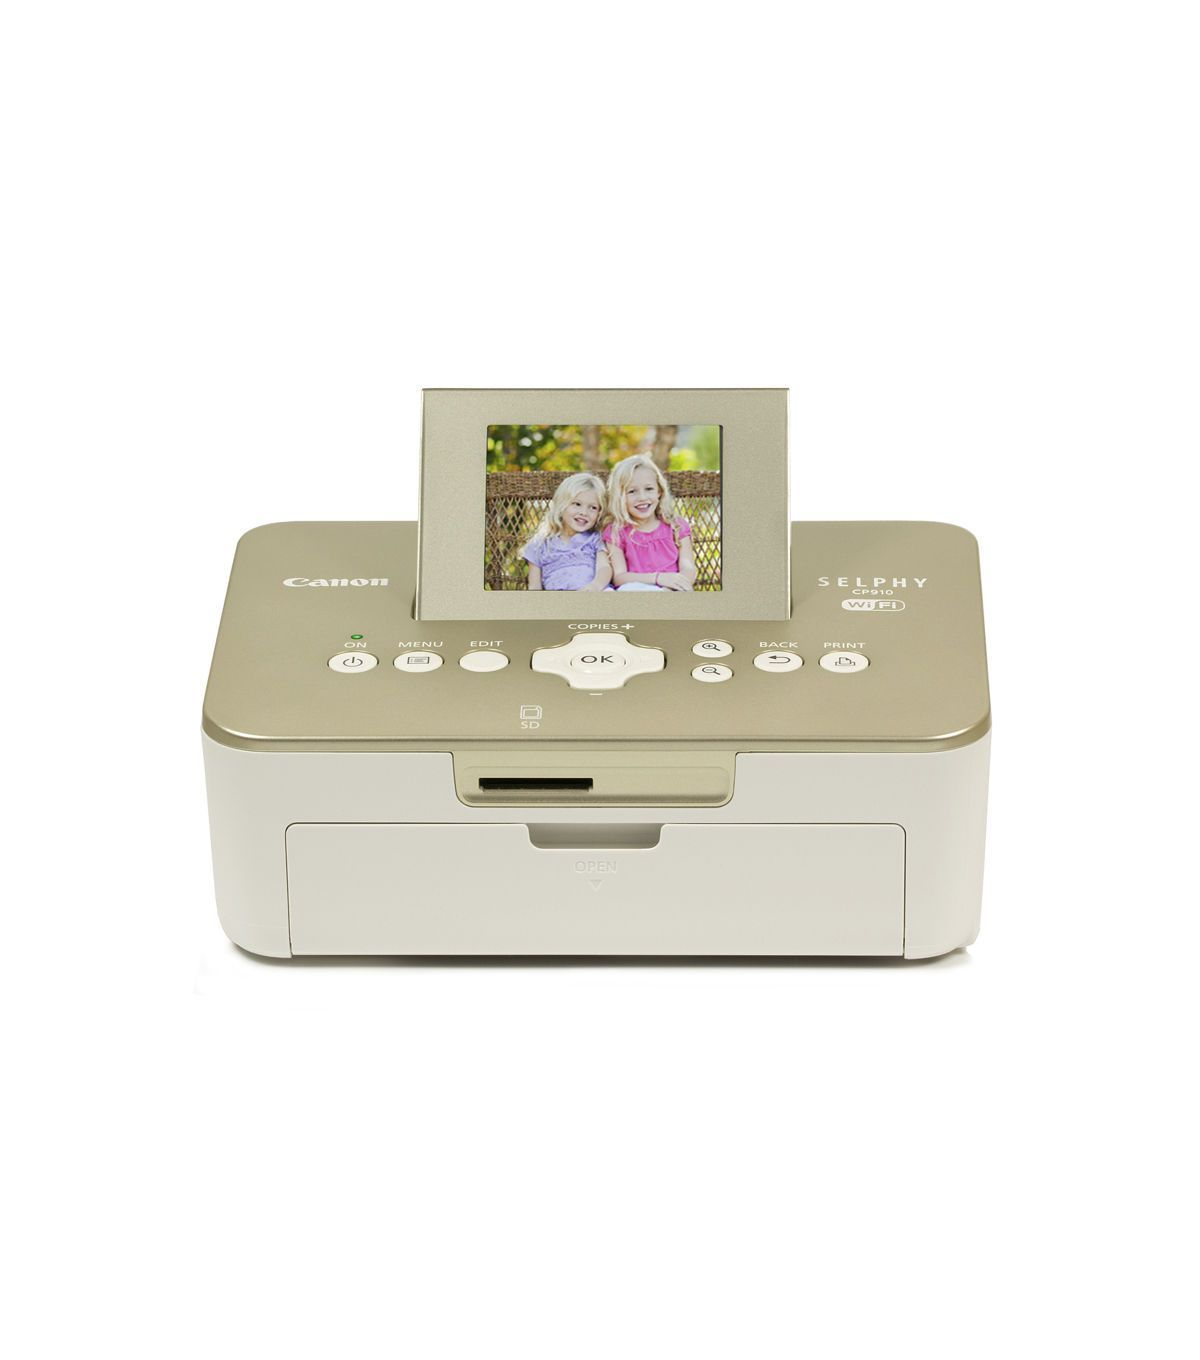 Canon Canon Selphy Cp910 Compact Photo Printer Paper Crafting